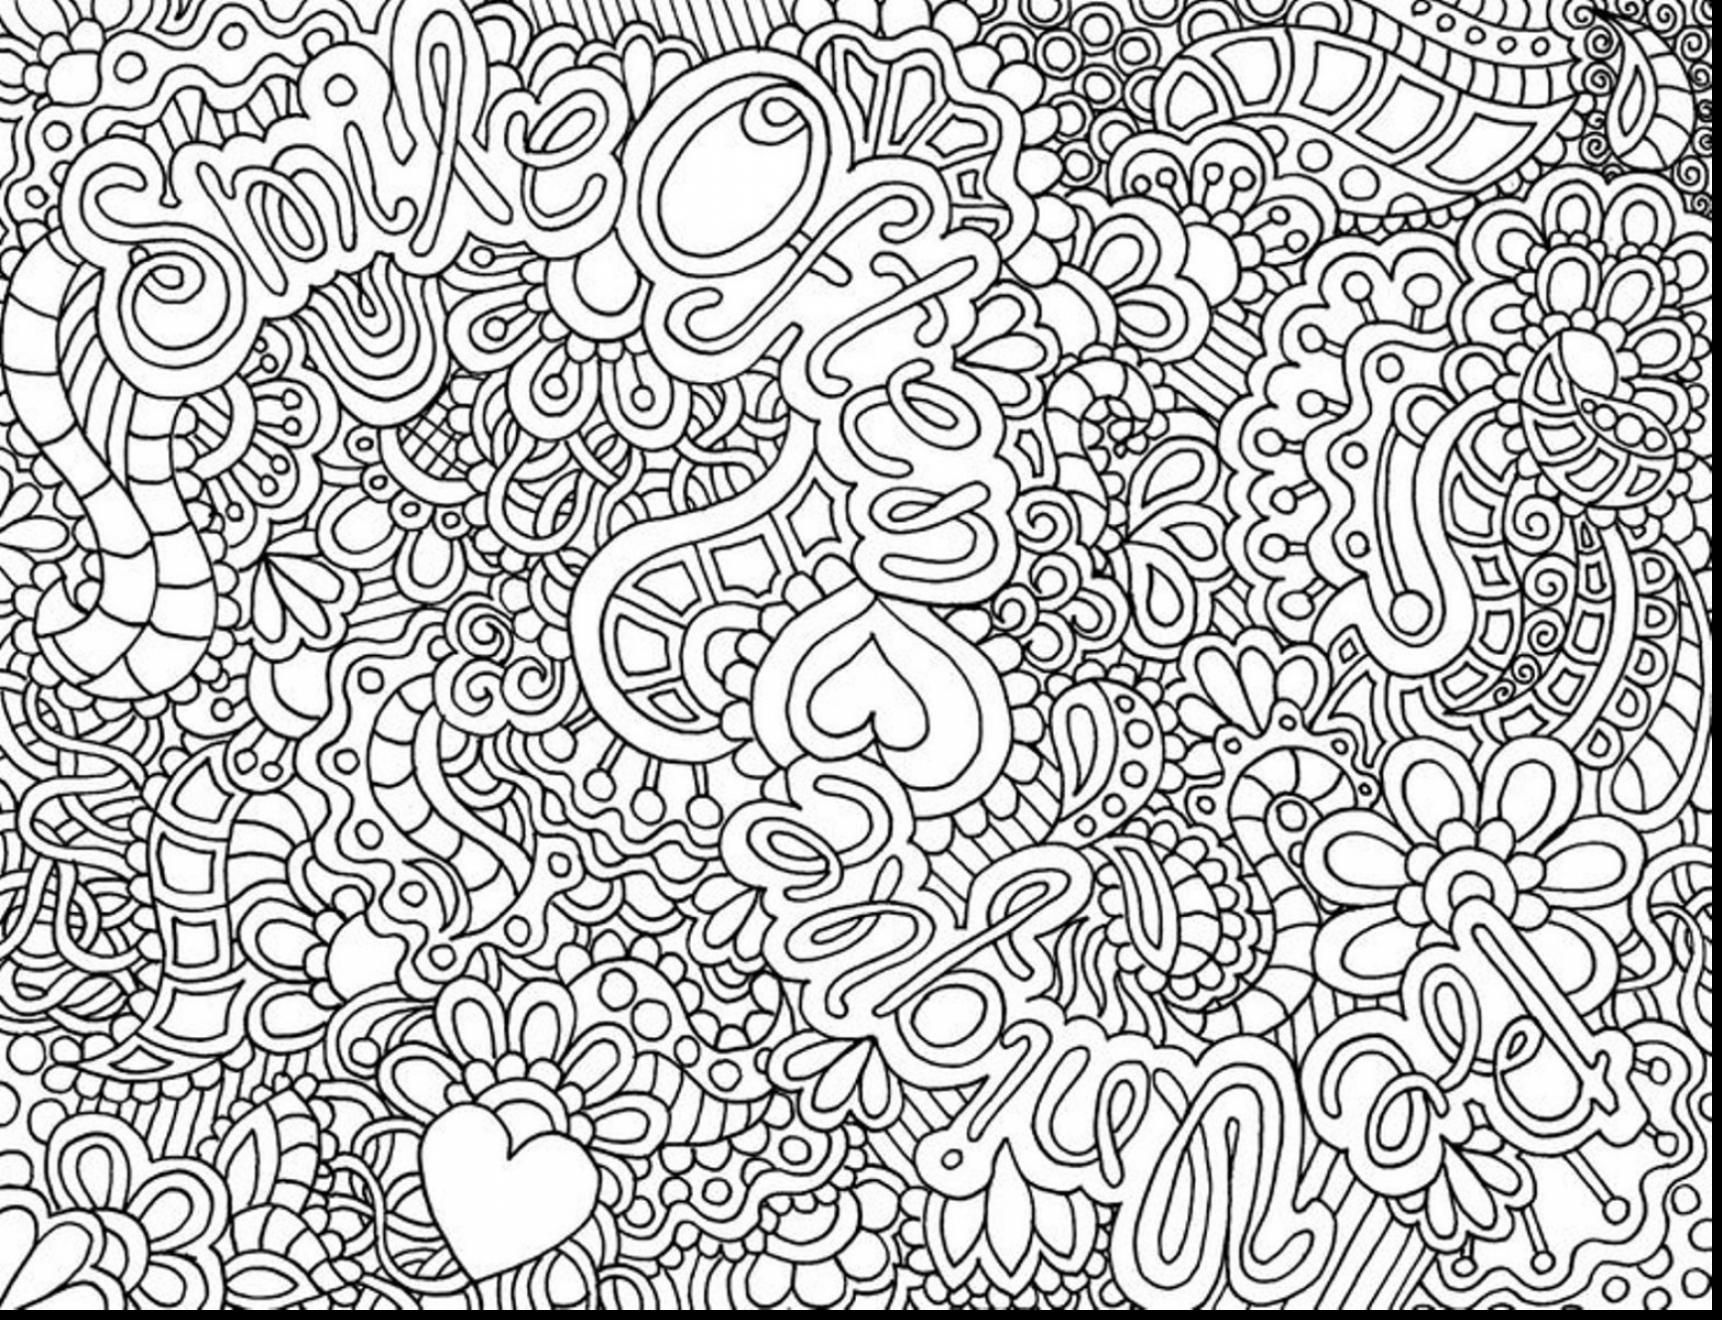 Free Coloring Pages Hearts Coloring Pages Coloring Pages Printable Adult Download Free Book N